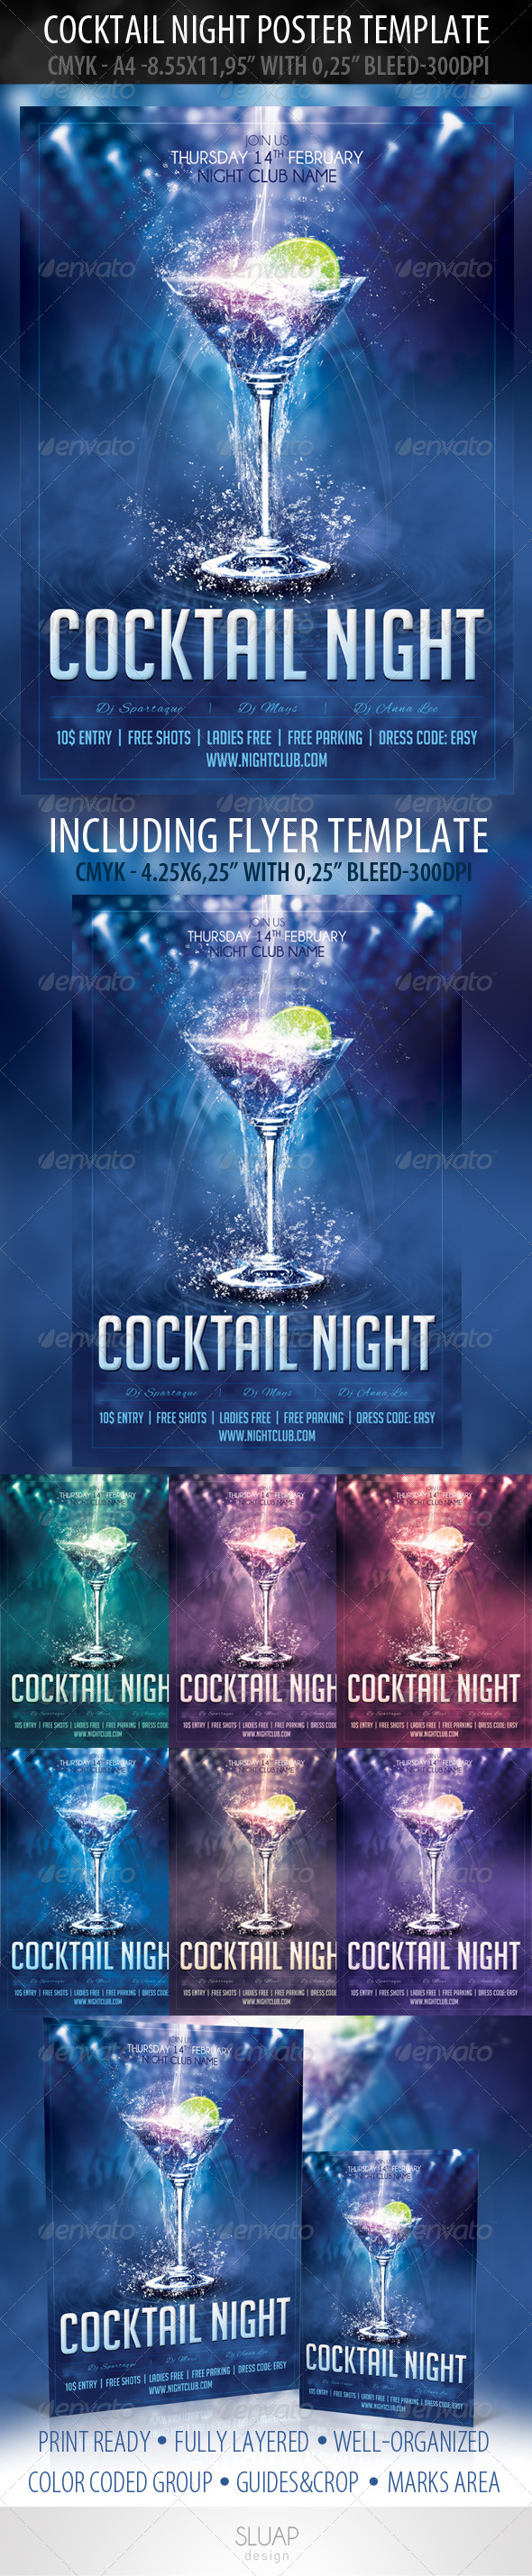 GraphicRiver Cocktail Night Poster Template & Cocktail Night Flyer 3791155